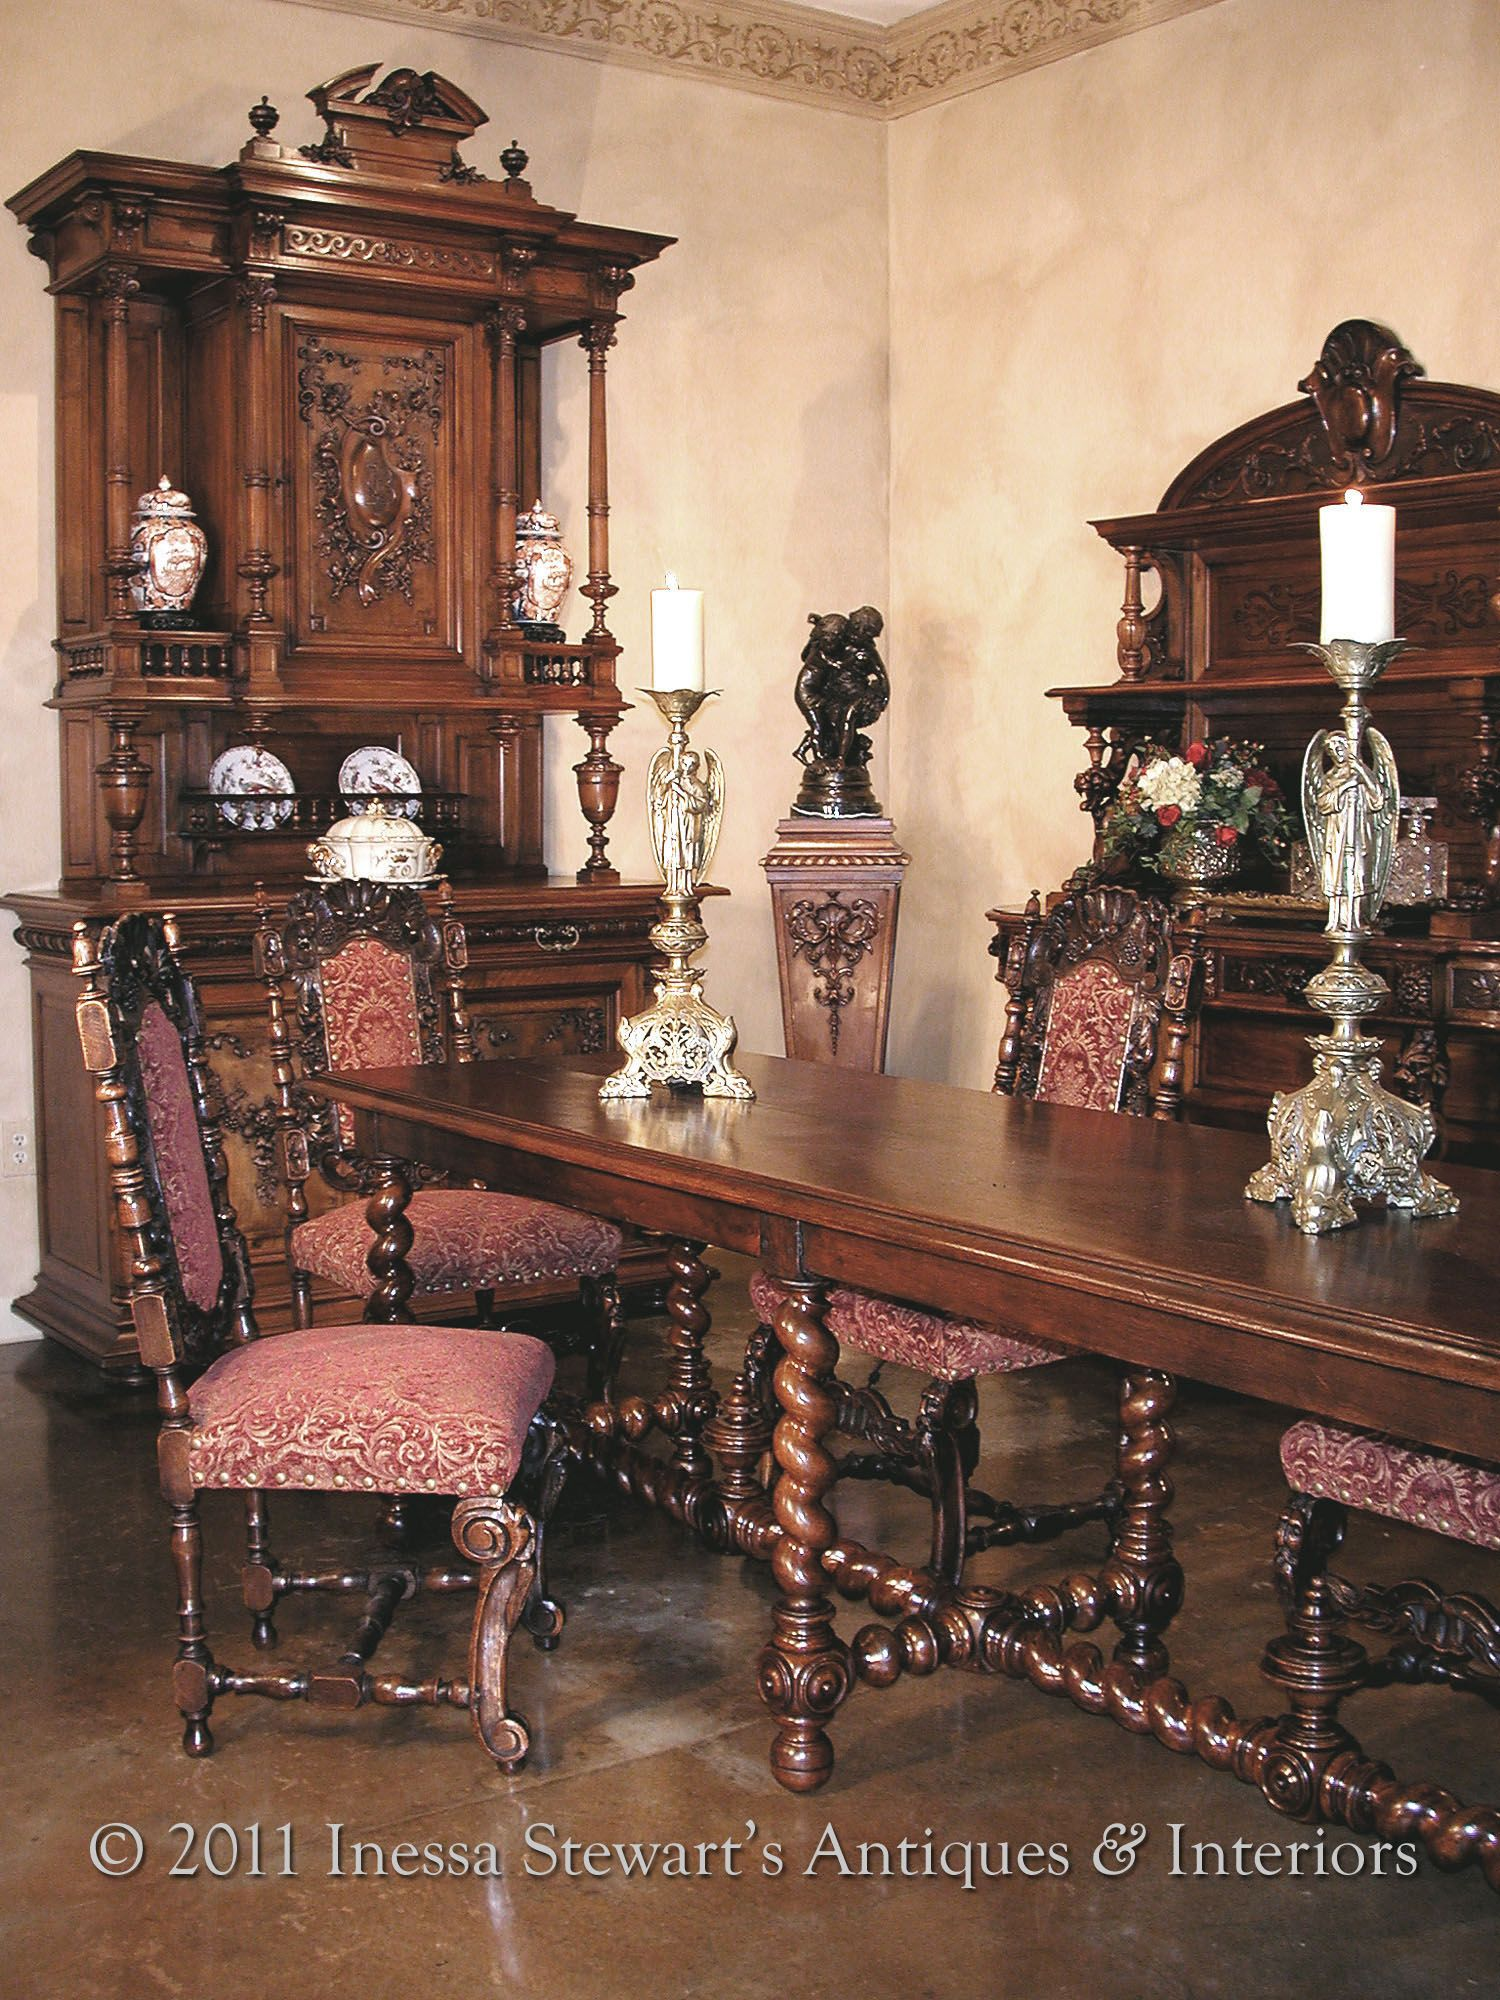 Antique Renaissance Style Dining Room To Most Of Us French Furniture Means Furnishings